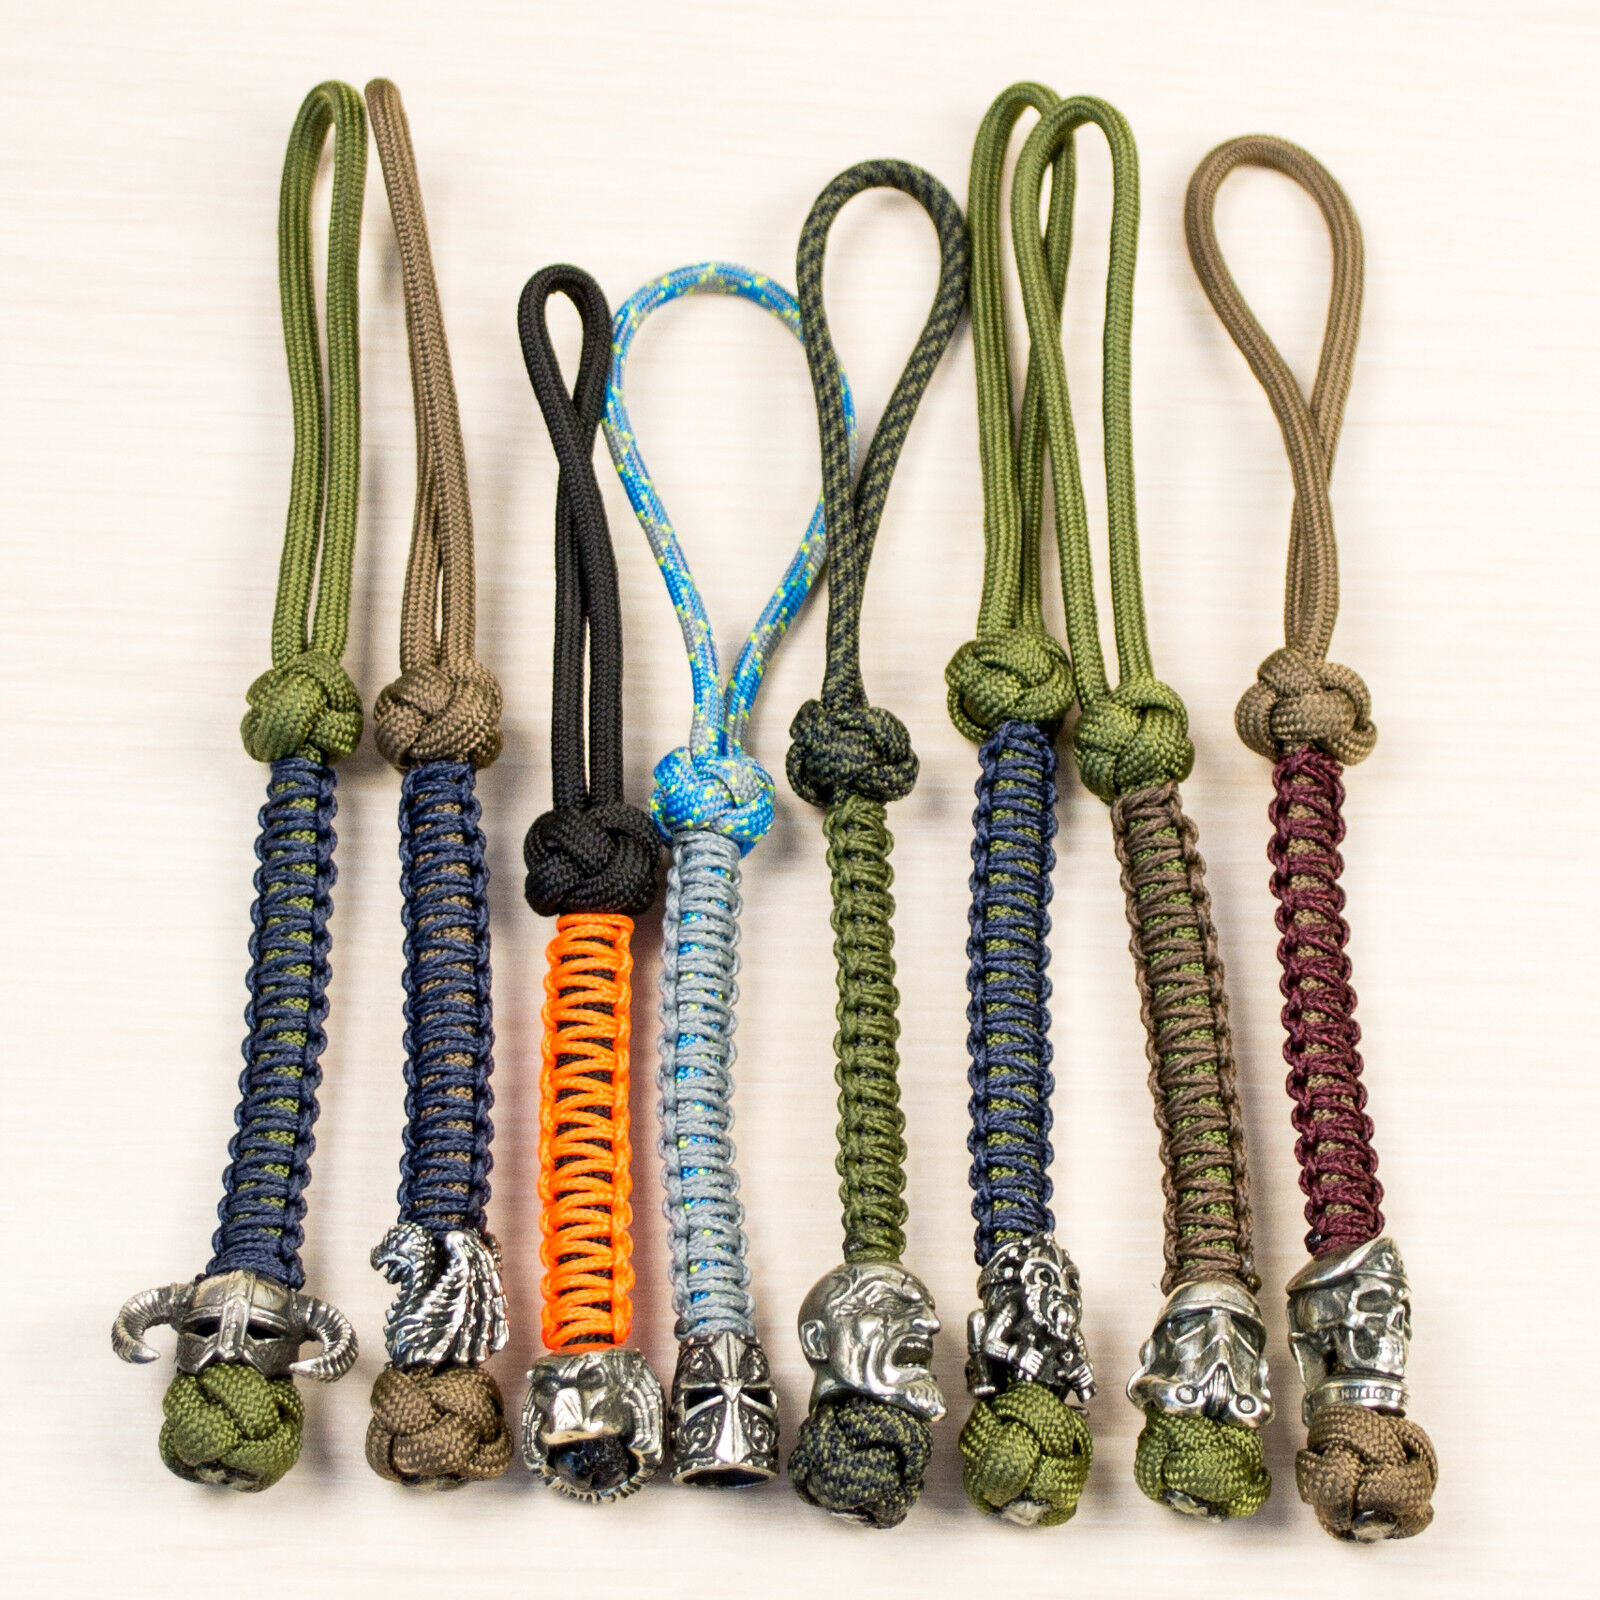 Key Fob Over 40 Artistic Beads Designs Cool Custom Paracord Lanyard Keychain